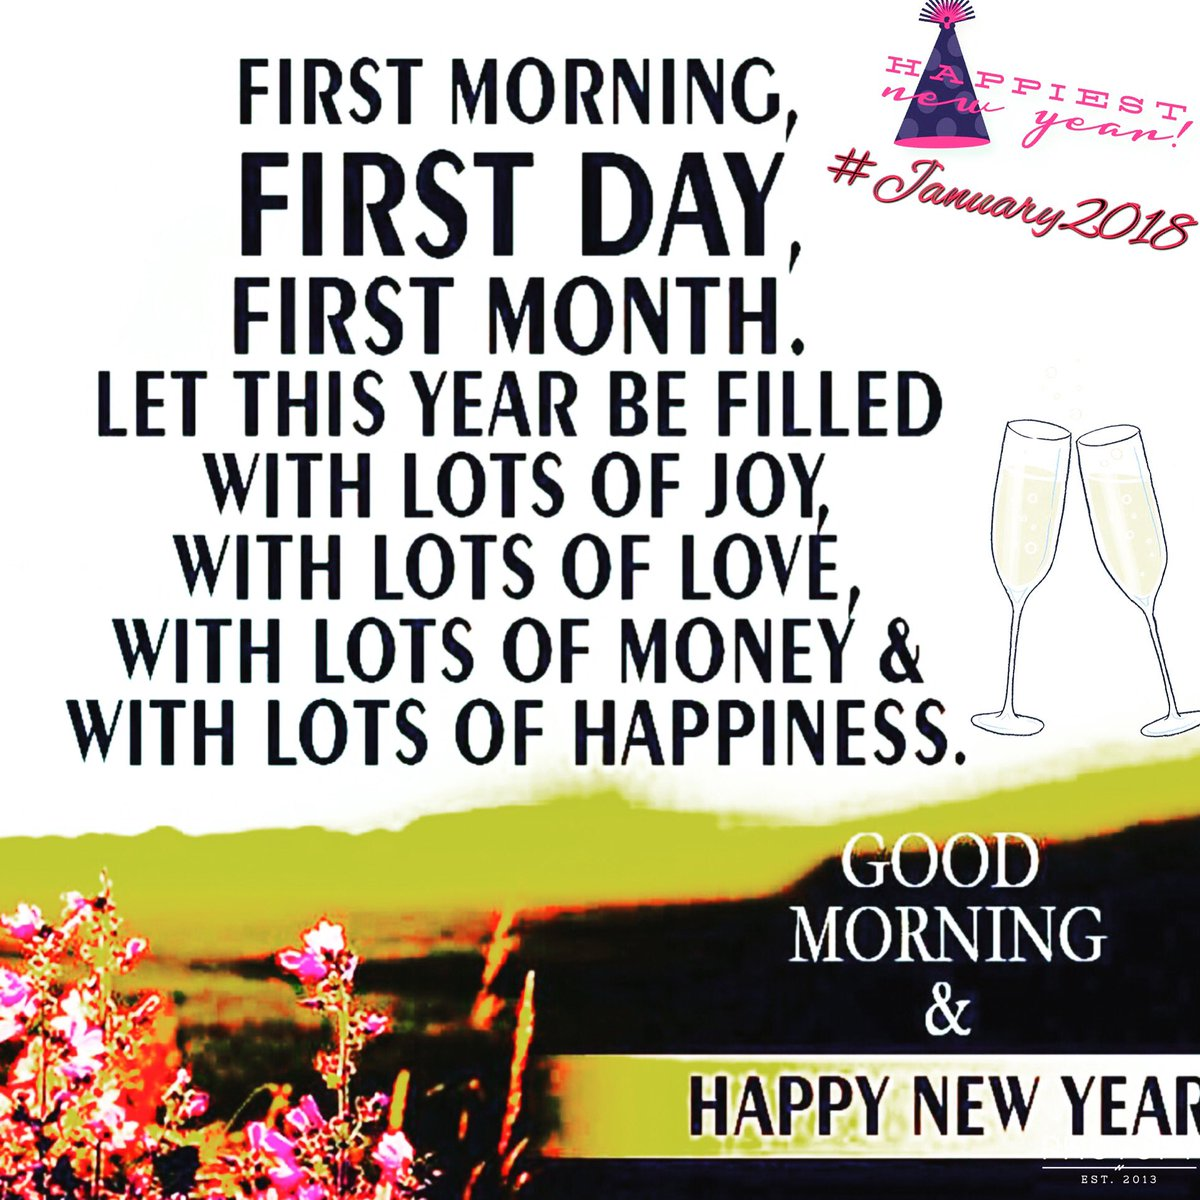 Attractive Be Always Happy Wishing You All A Marvelous Year 2018 #goodmorning  #january2018 #GOD #PRAY #FAITH #POSITIVE #OPTIMIST #LIFE #TRUST #NEWYORK  #NAMASTE #ॐ #OM ...